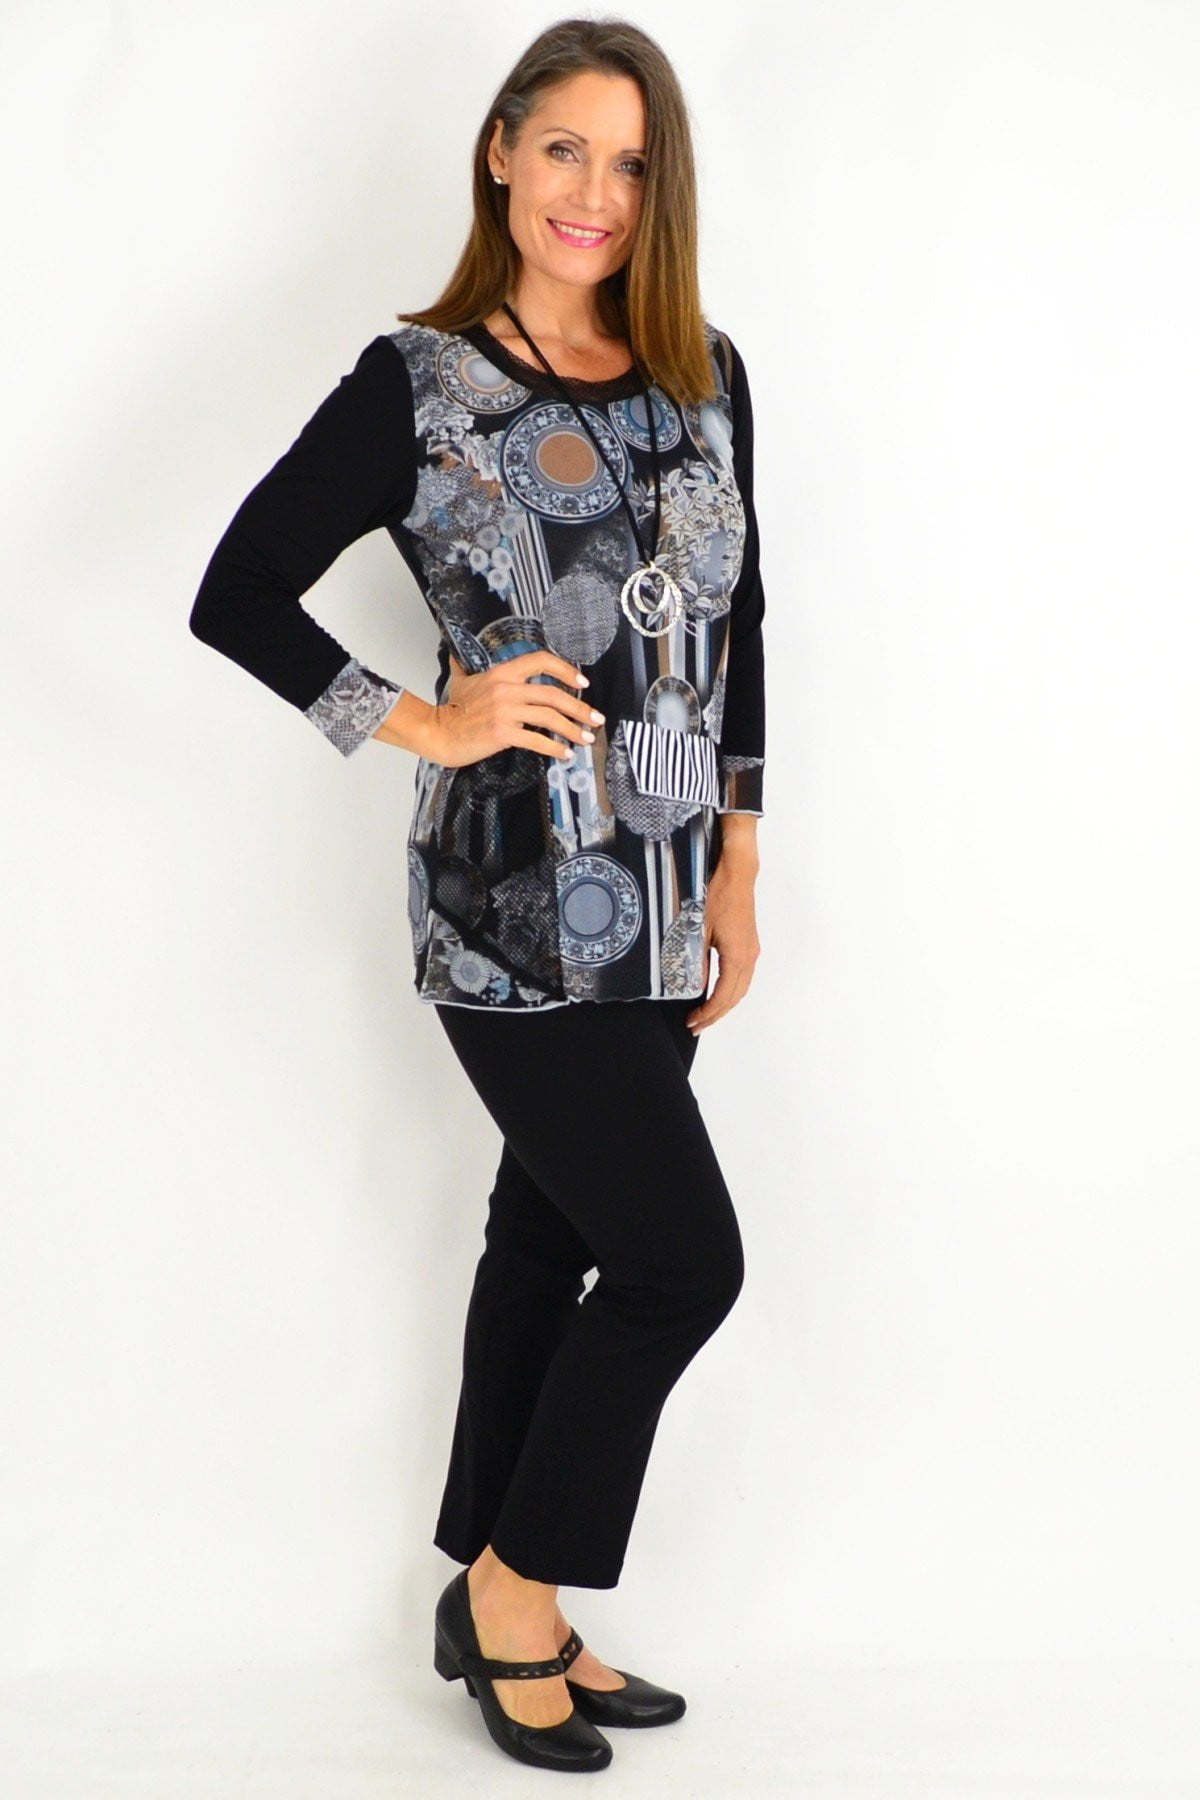 Chelsea Tunic Top | I Love Tunics | Tunic Tops | Tunic | Tunic Dresses  | womens clothing online